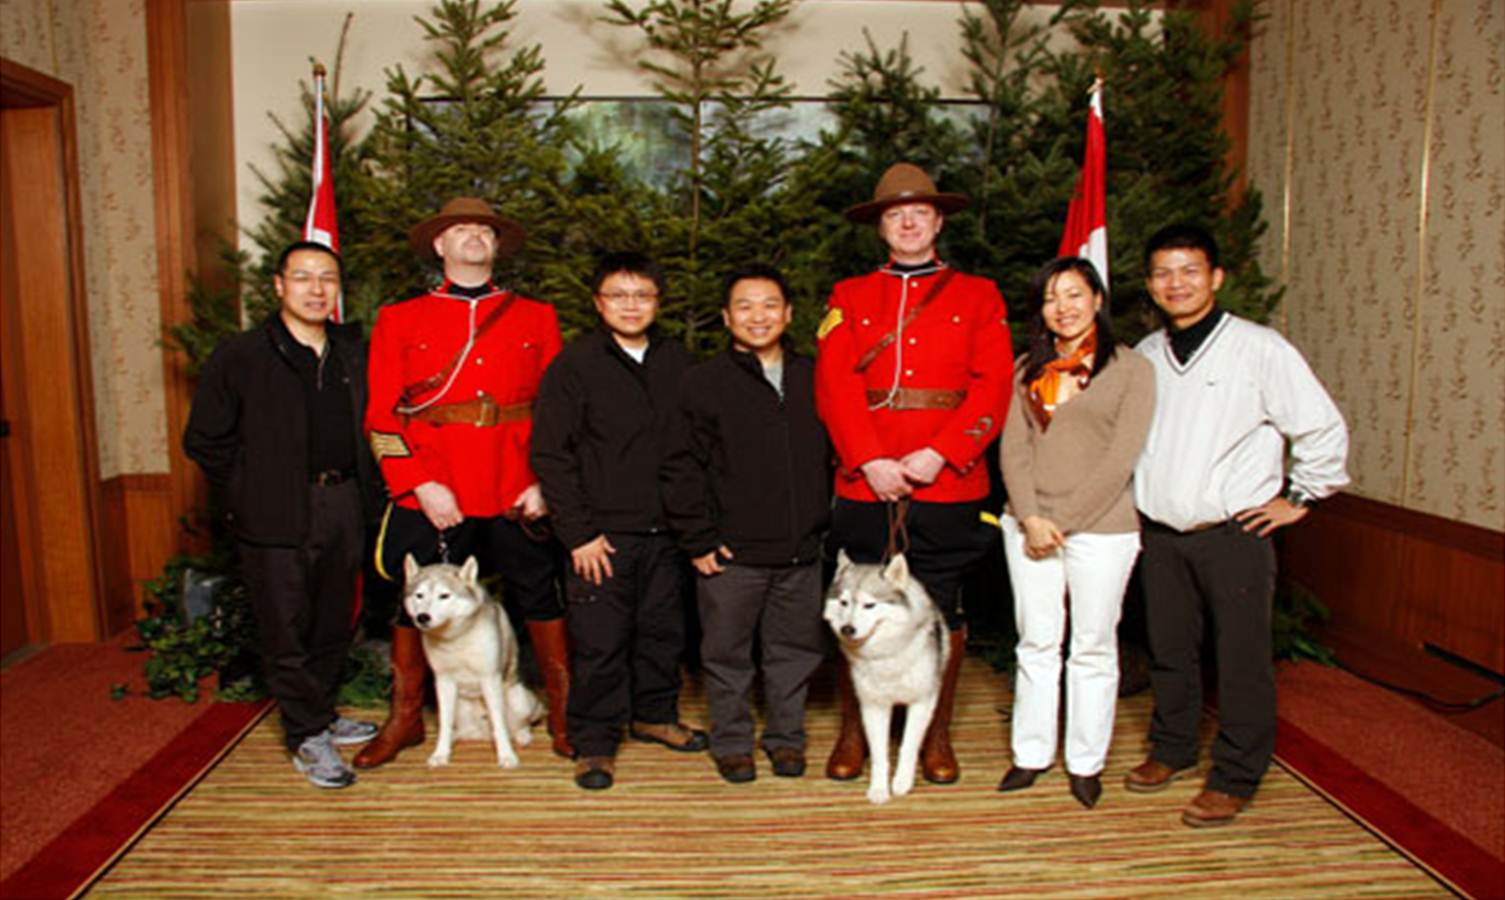 Mounties and Huskies In Canada